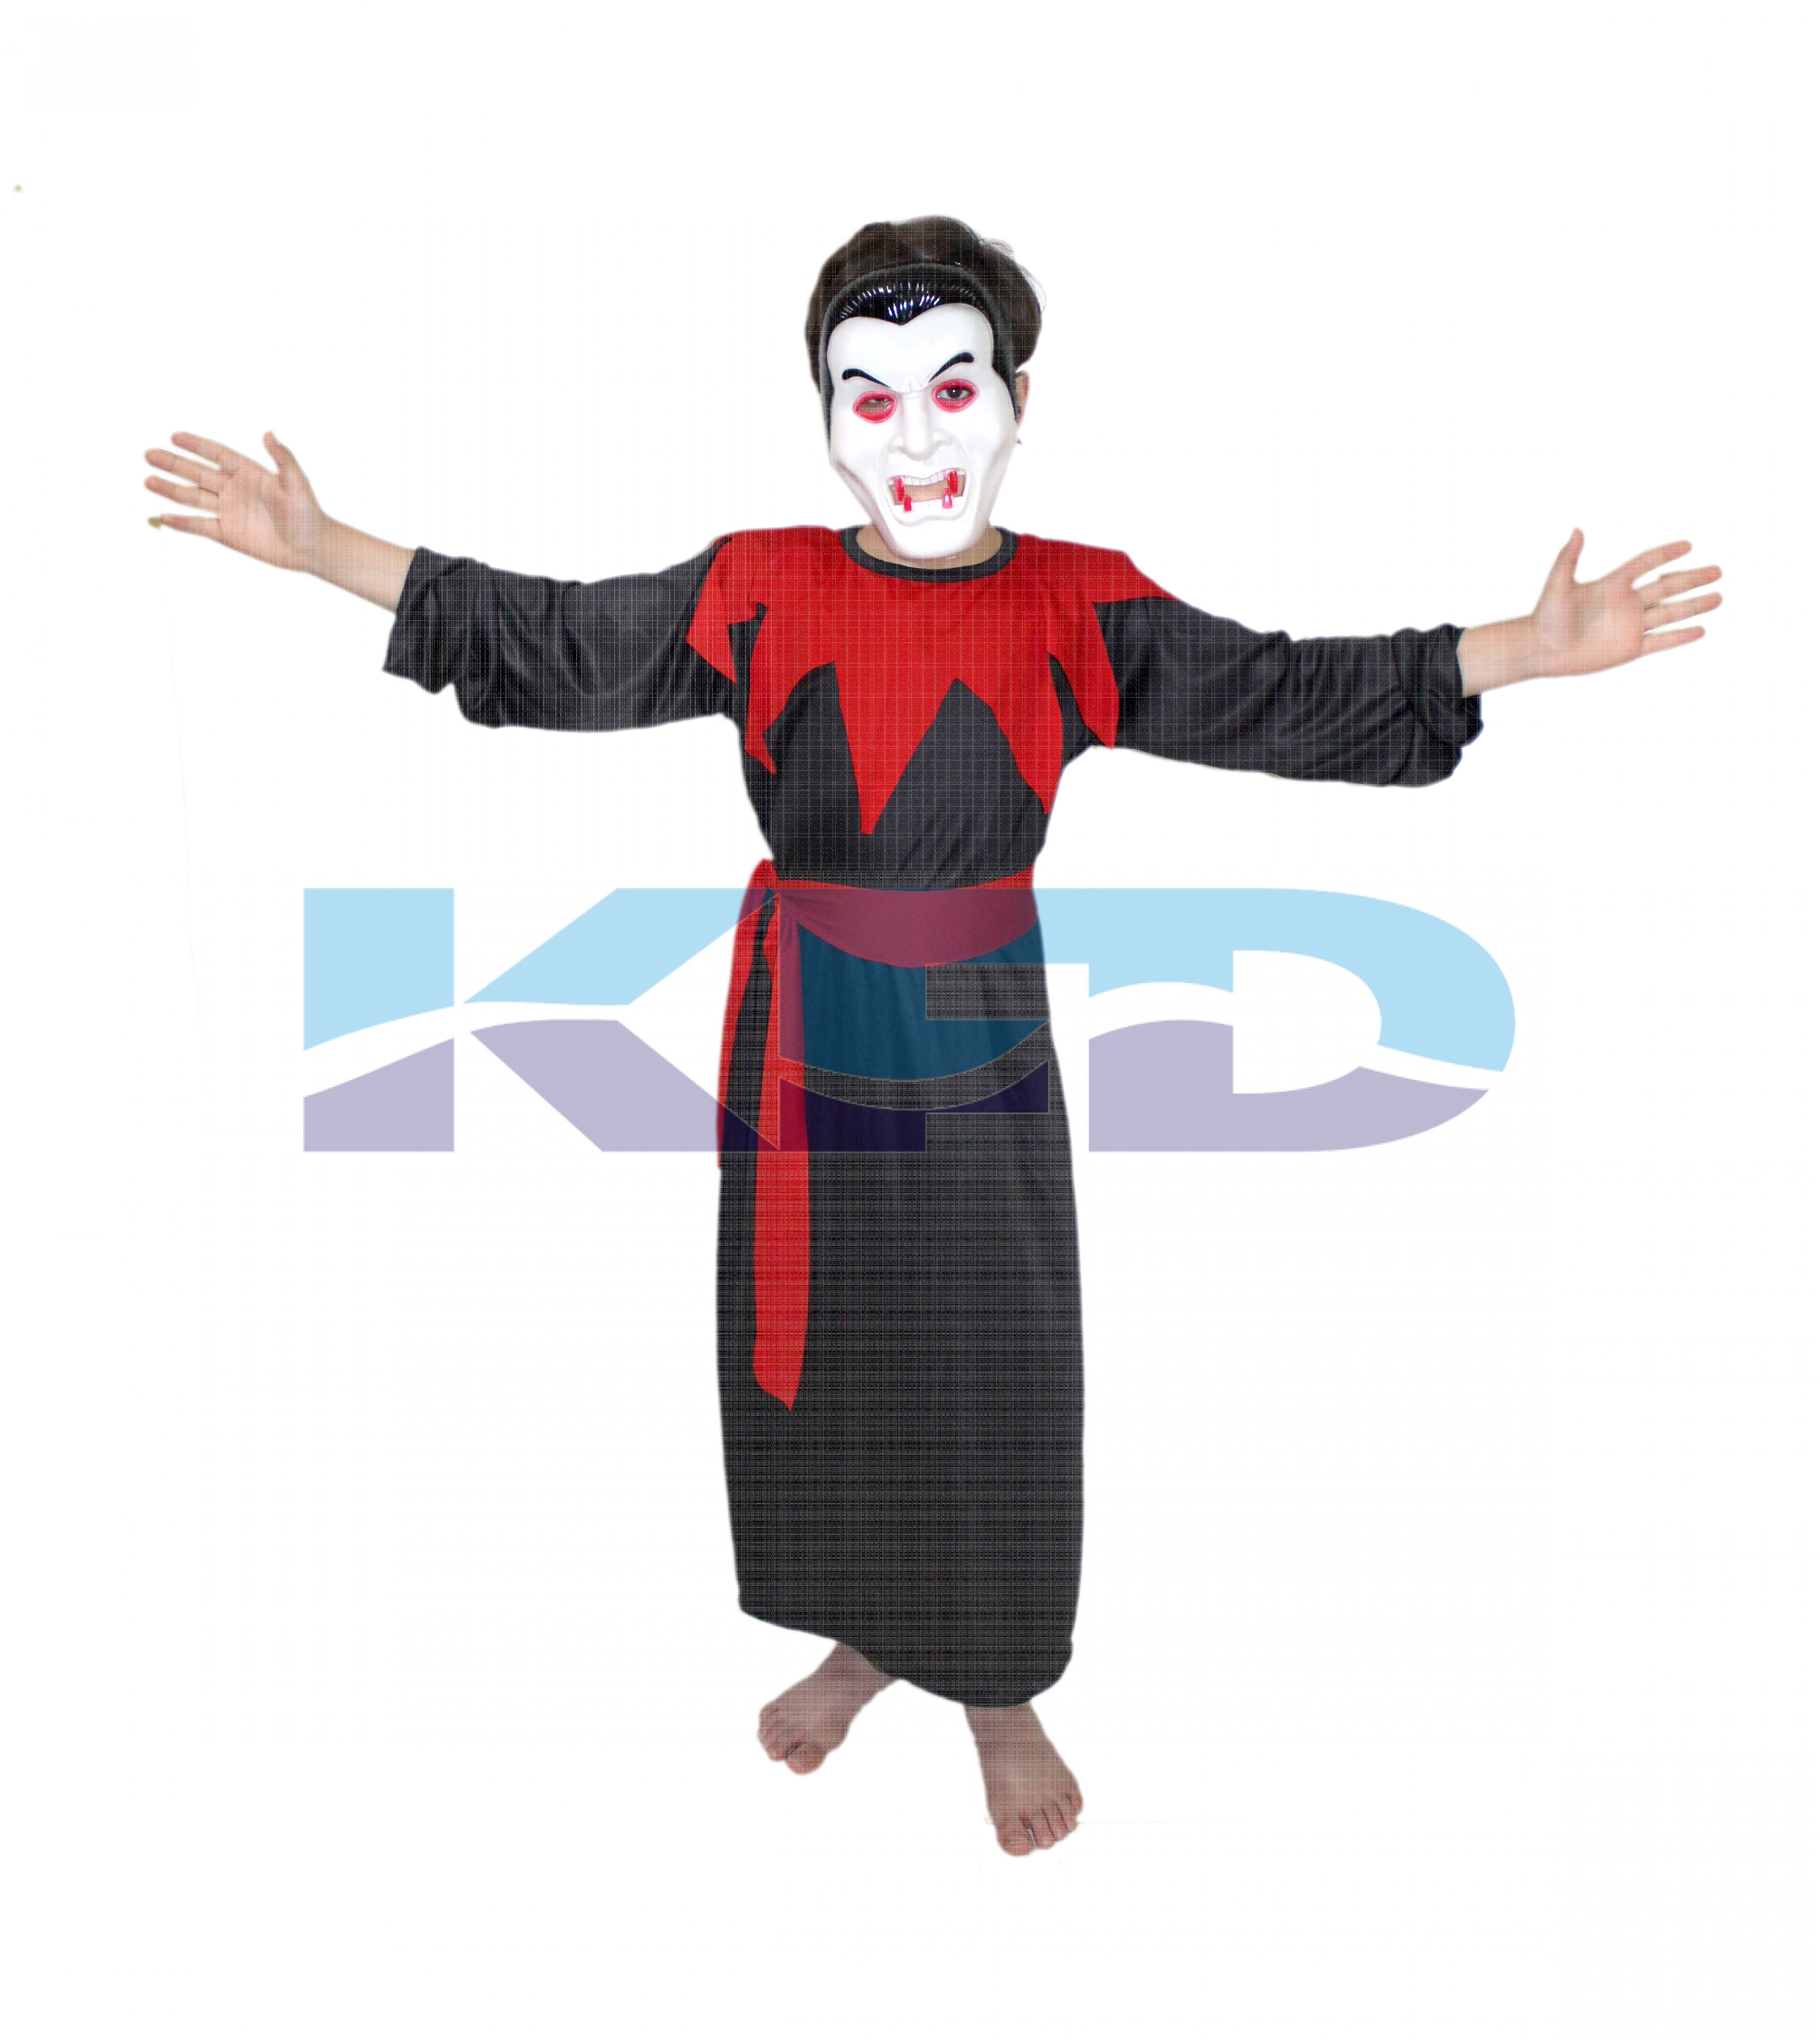 Vampire Dracula Gown Halloween Costume/California Costume For School Annual function/Theme Party/Competition/Stage Shows/Birthday Party Dress